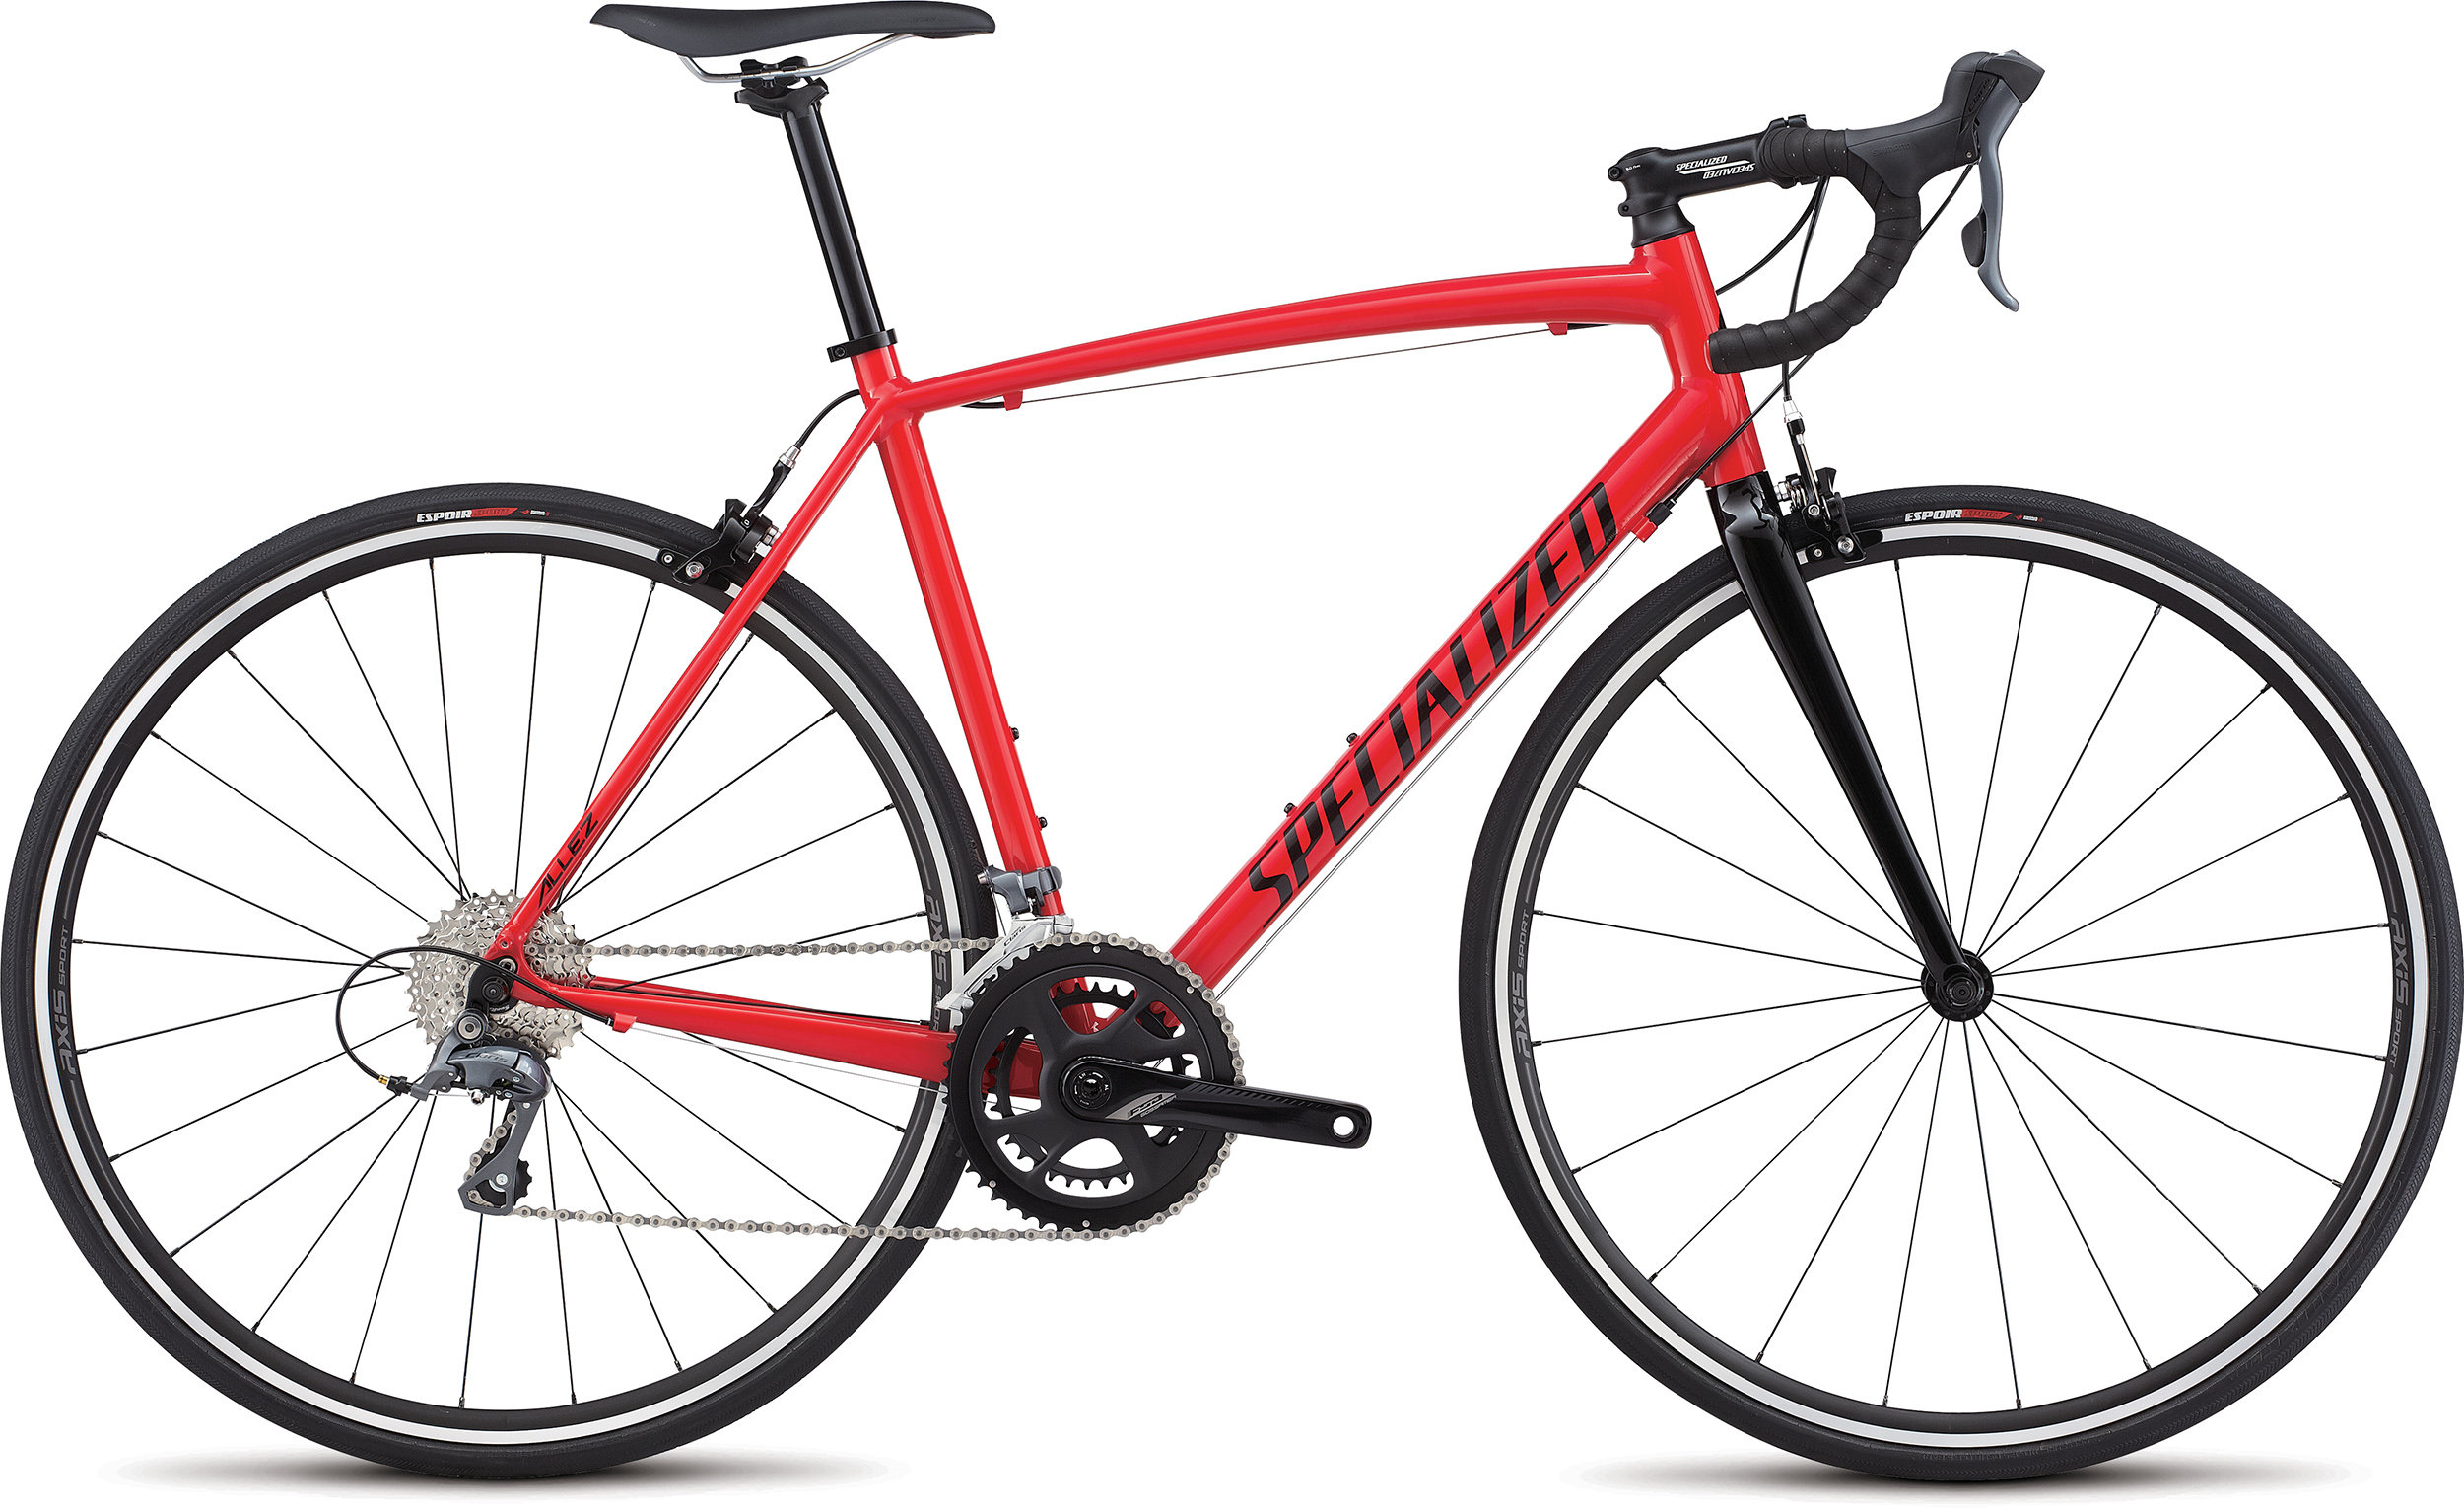 SPECIALIZED ALLEZ E5 FLORED/TARBLK 49 - Bike Maniac